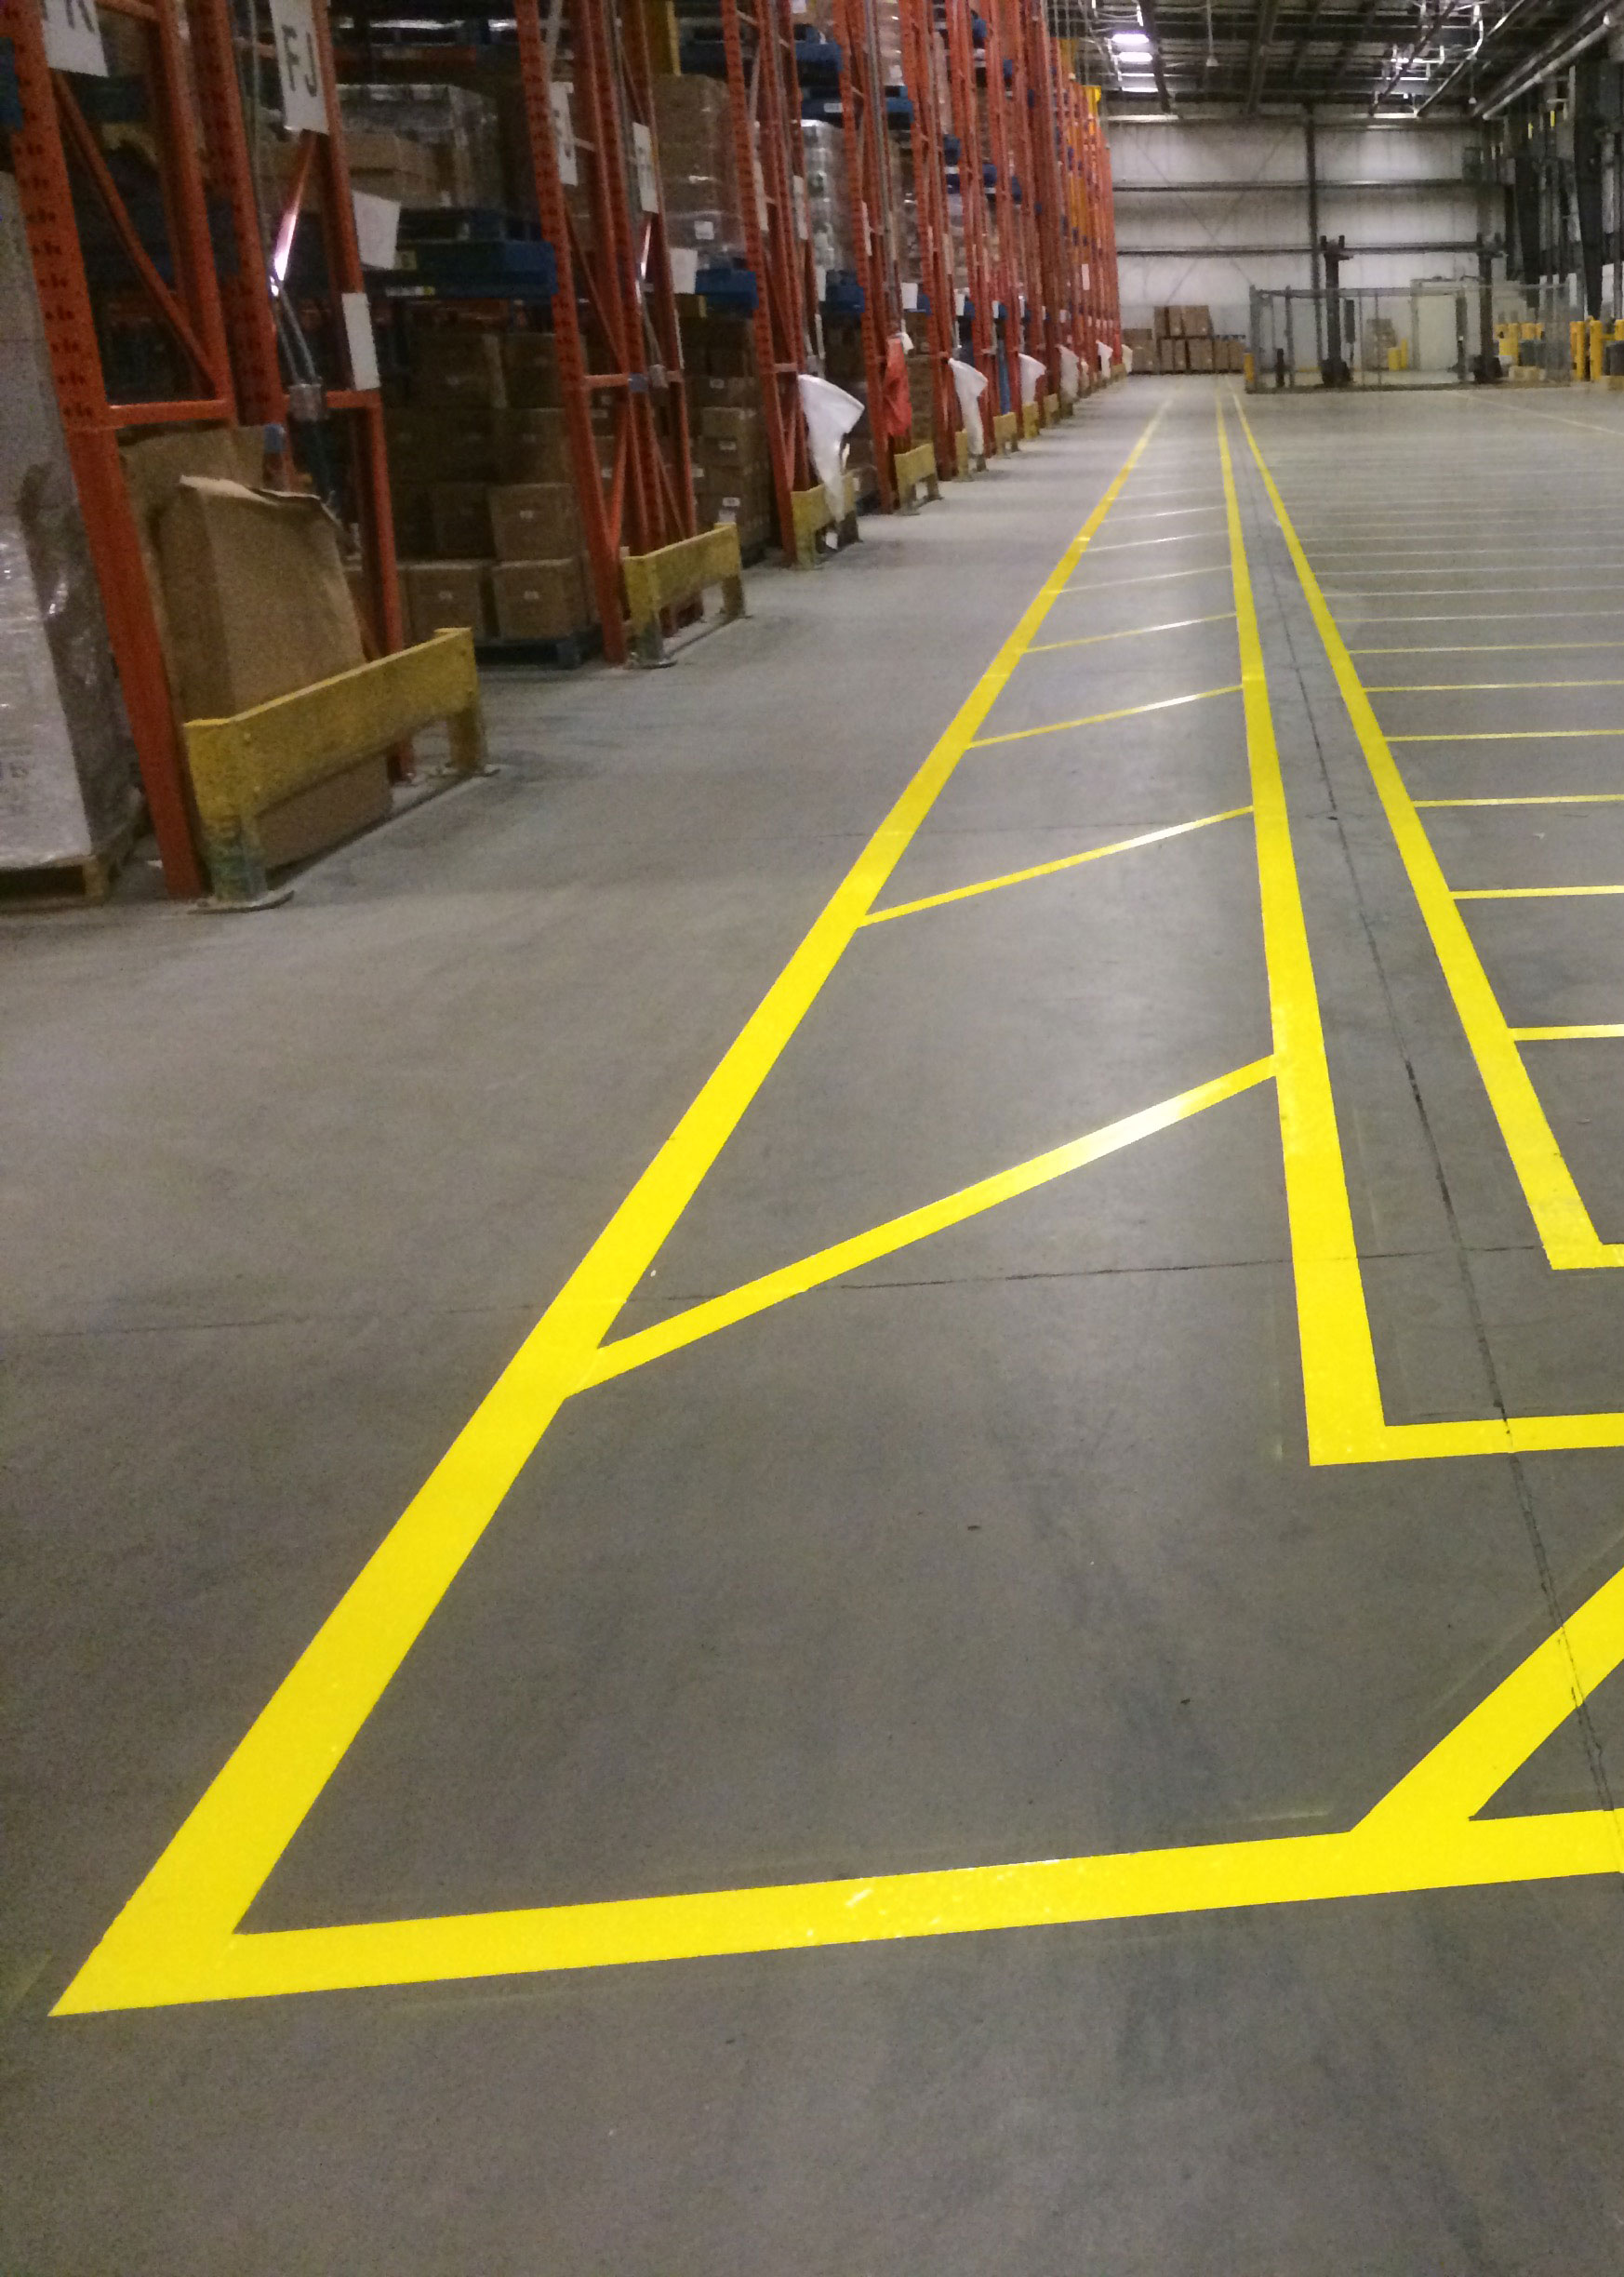 Interior line painting pricing calgary everline coatings for Cost to paint parking lot lines